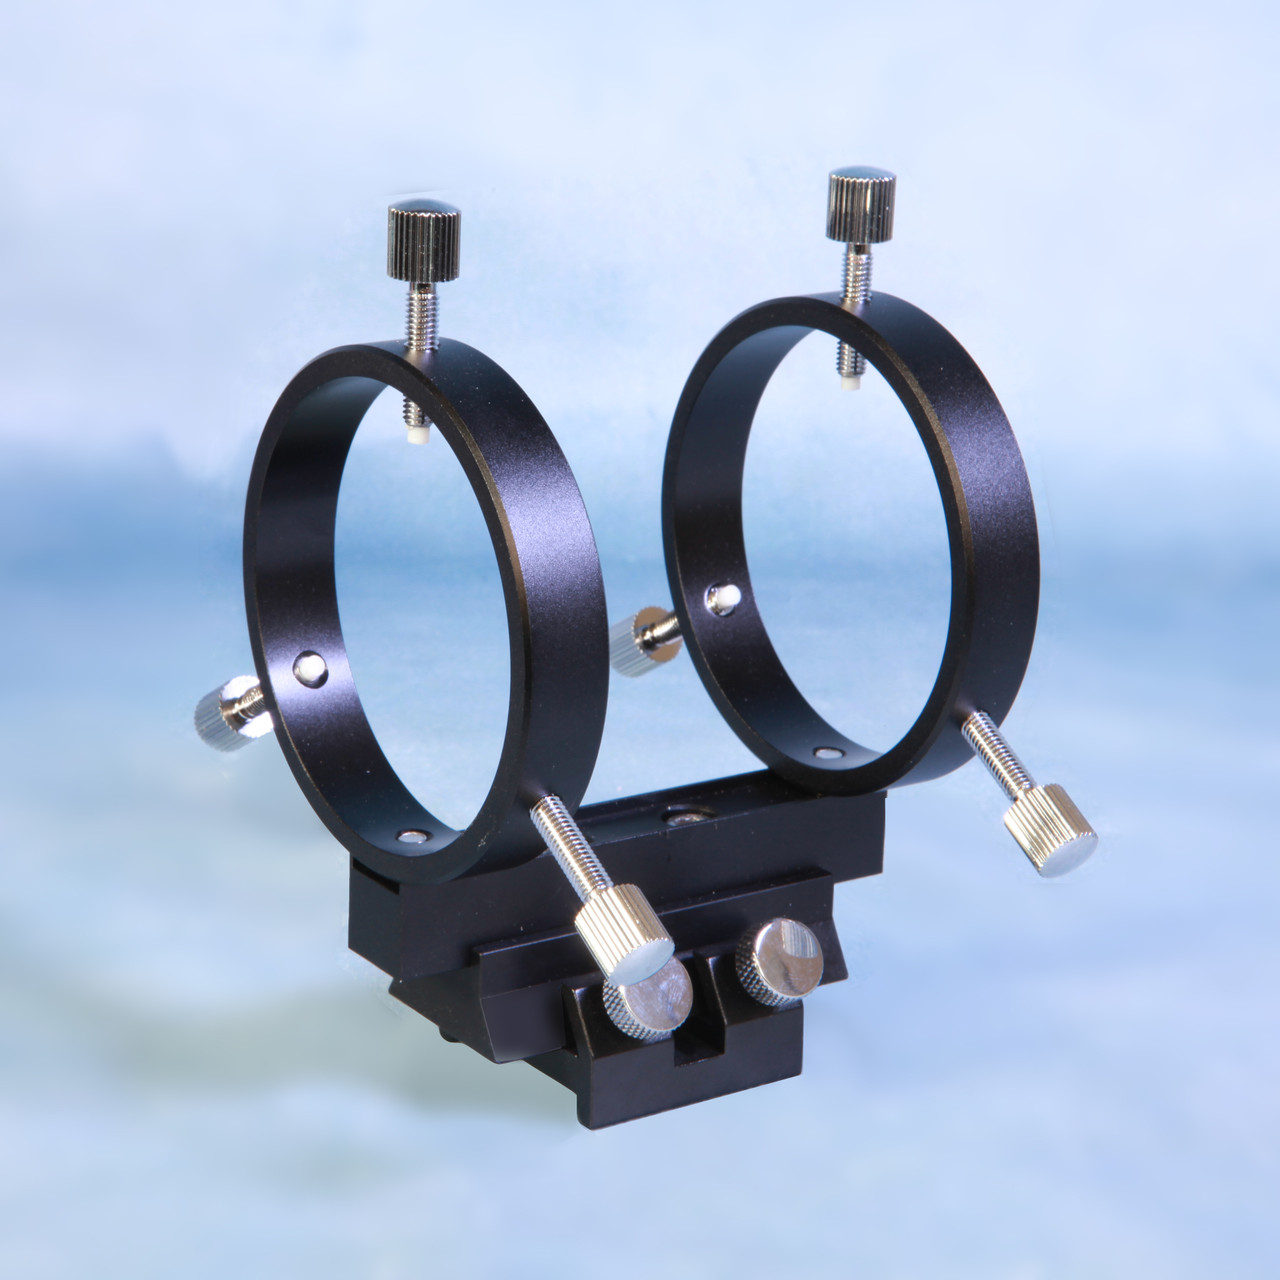 R050 Low Profile Rings with lightweight FB shoe